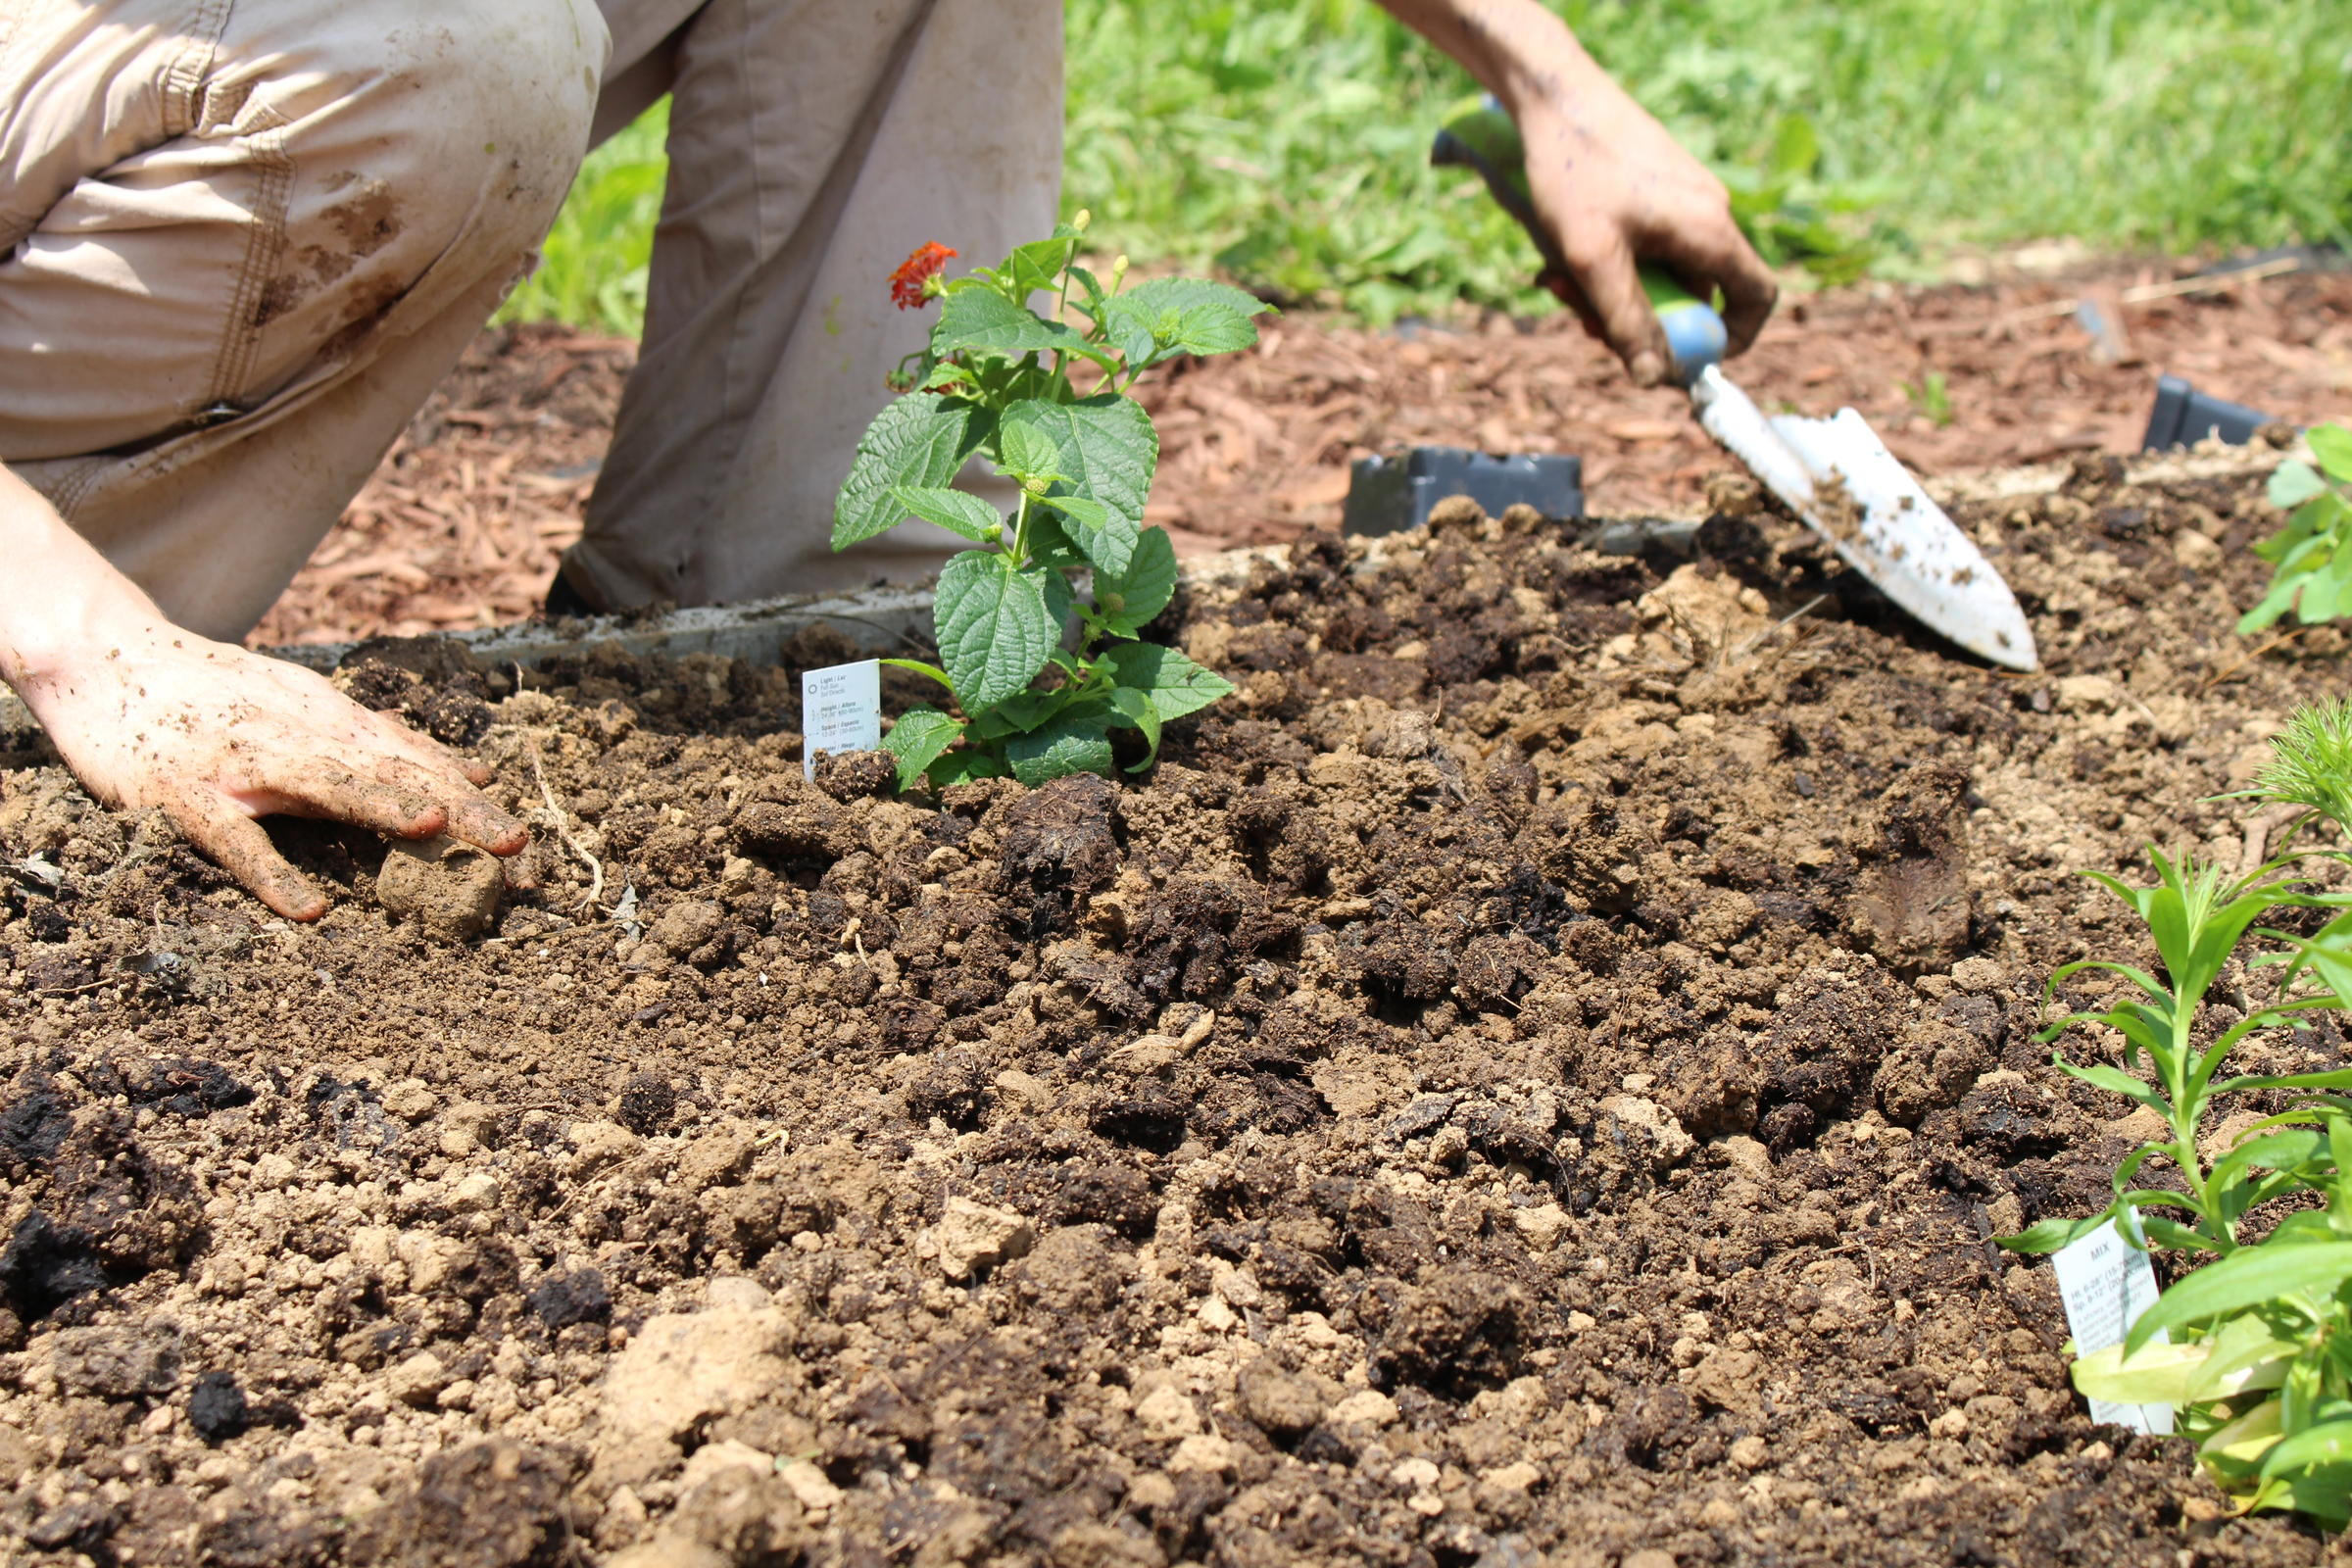 back to the garden how green thumbs help with addiction recovery